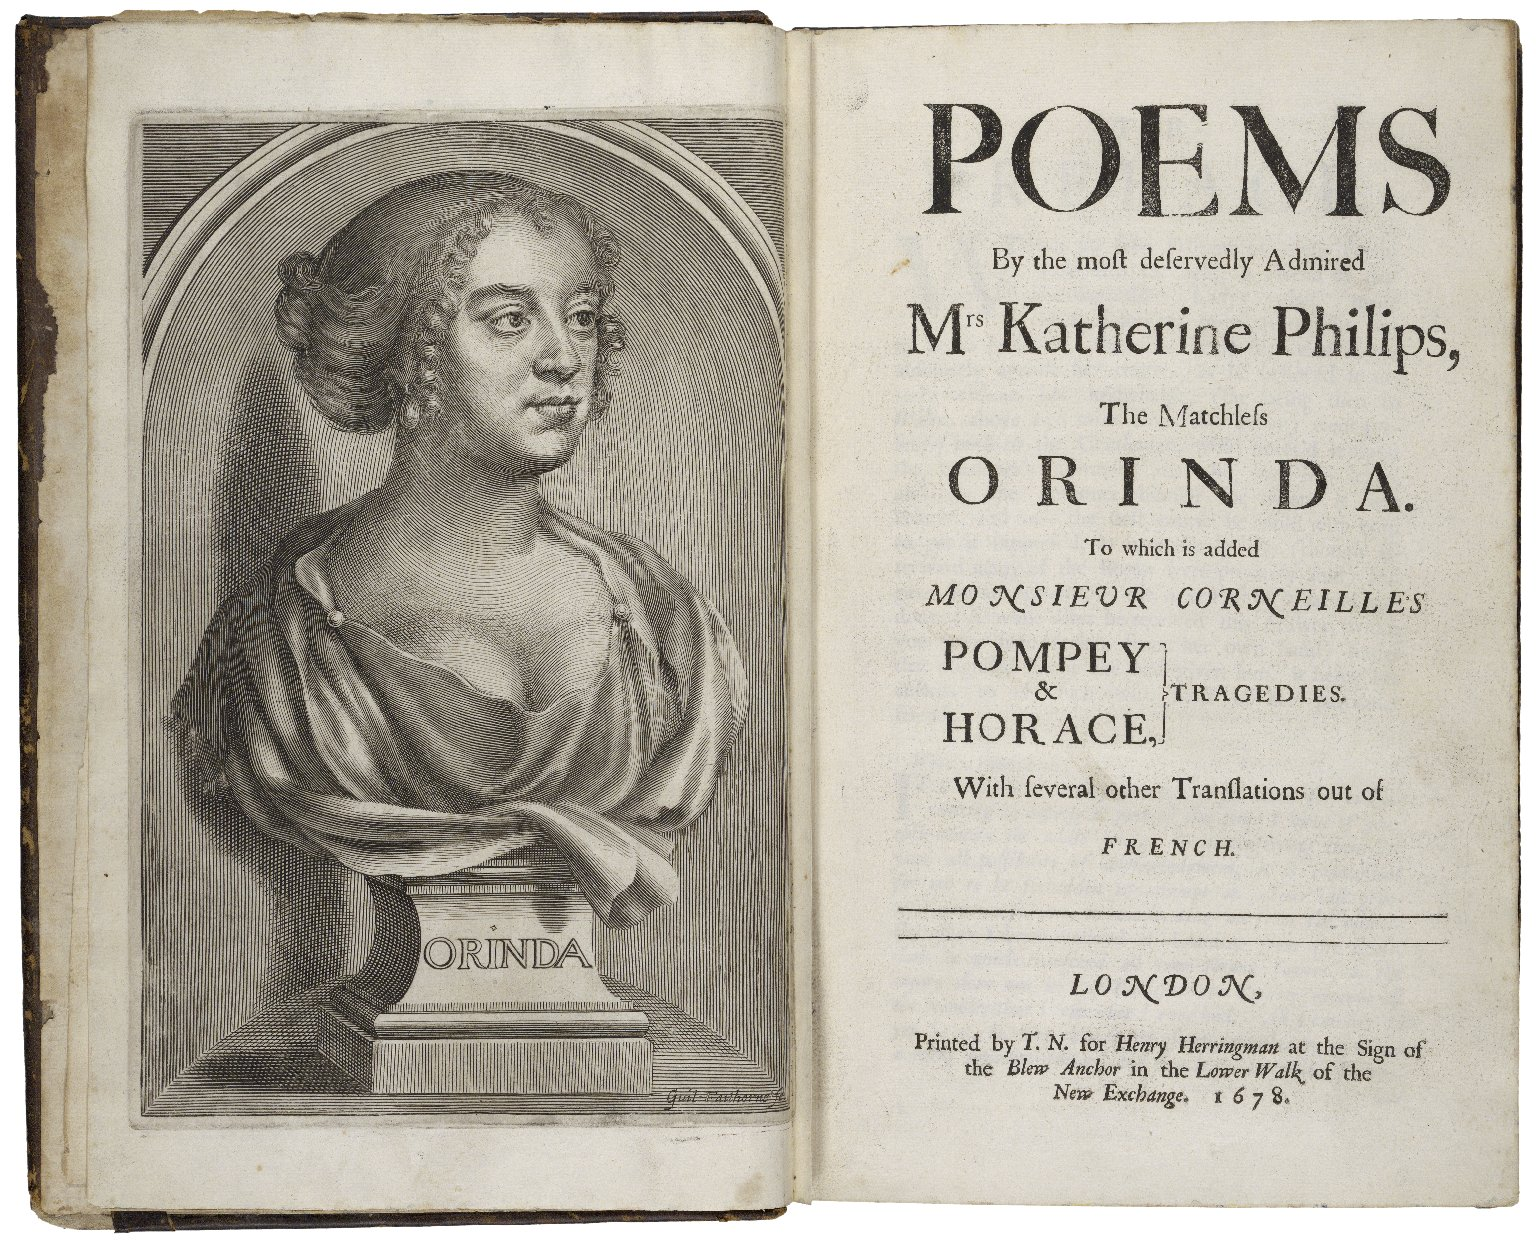 Poems by the most deservedly admired Mrs Katherine Philips, the matchless Orinda ...